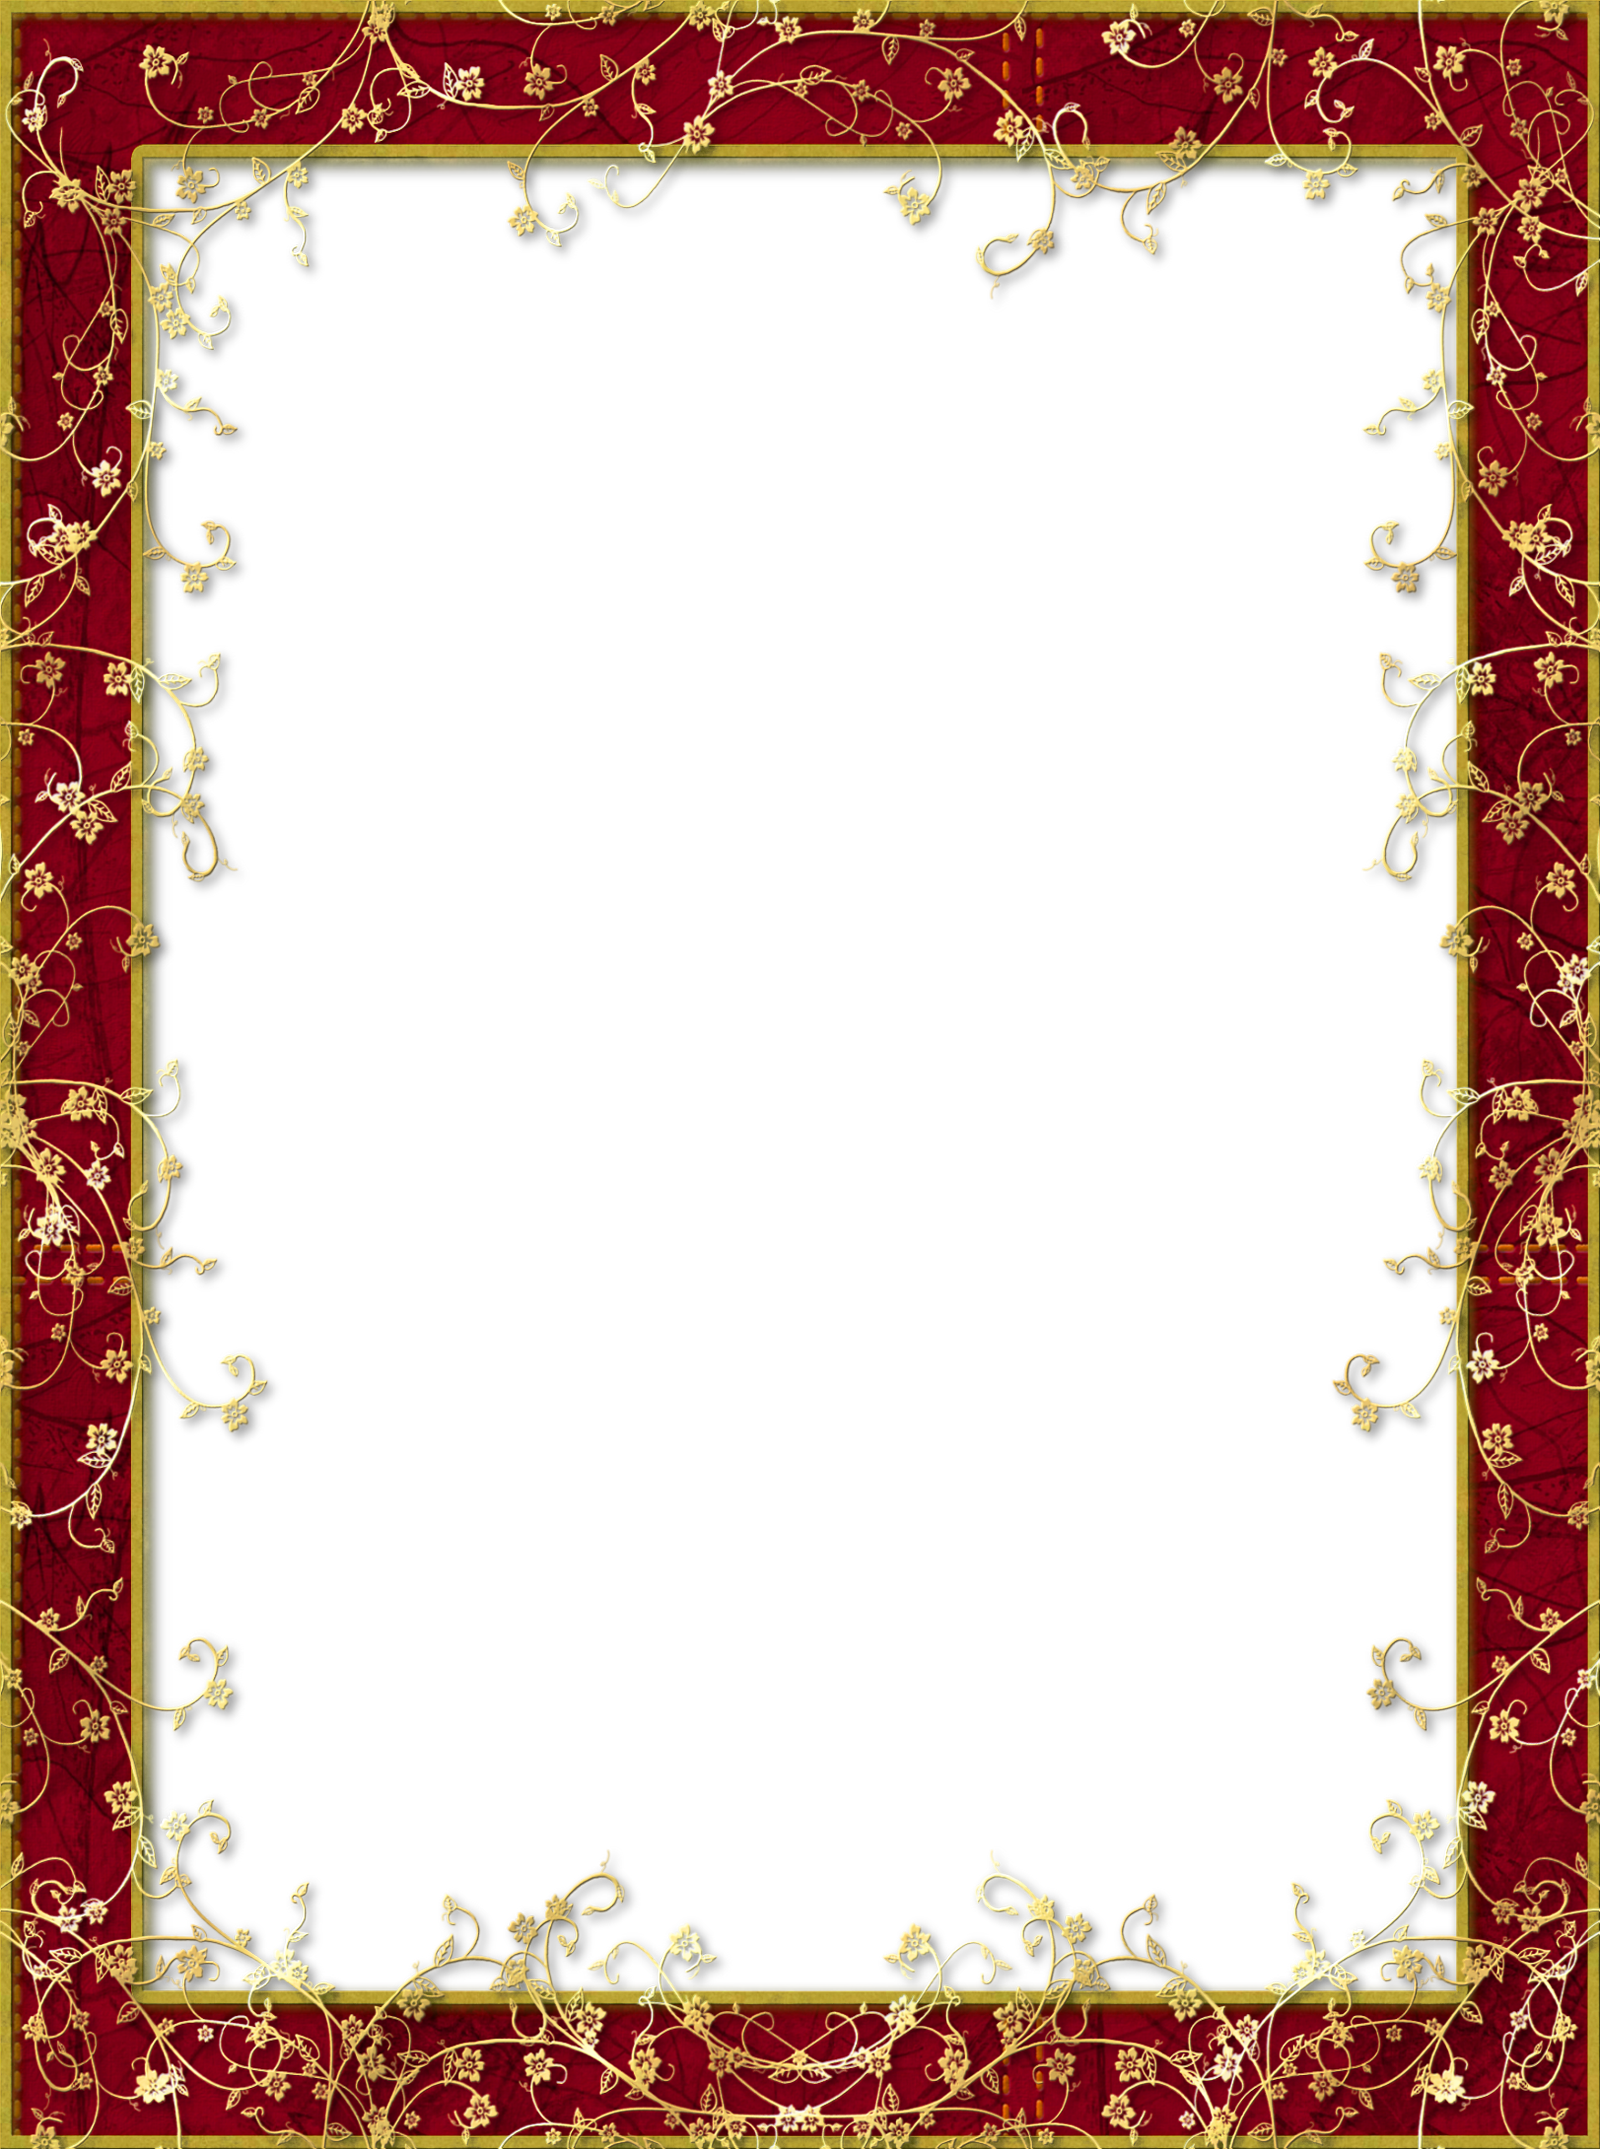 Red Transparent PNG Frame with Gold Flowers | Borders ...